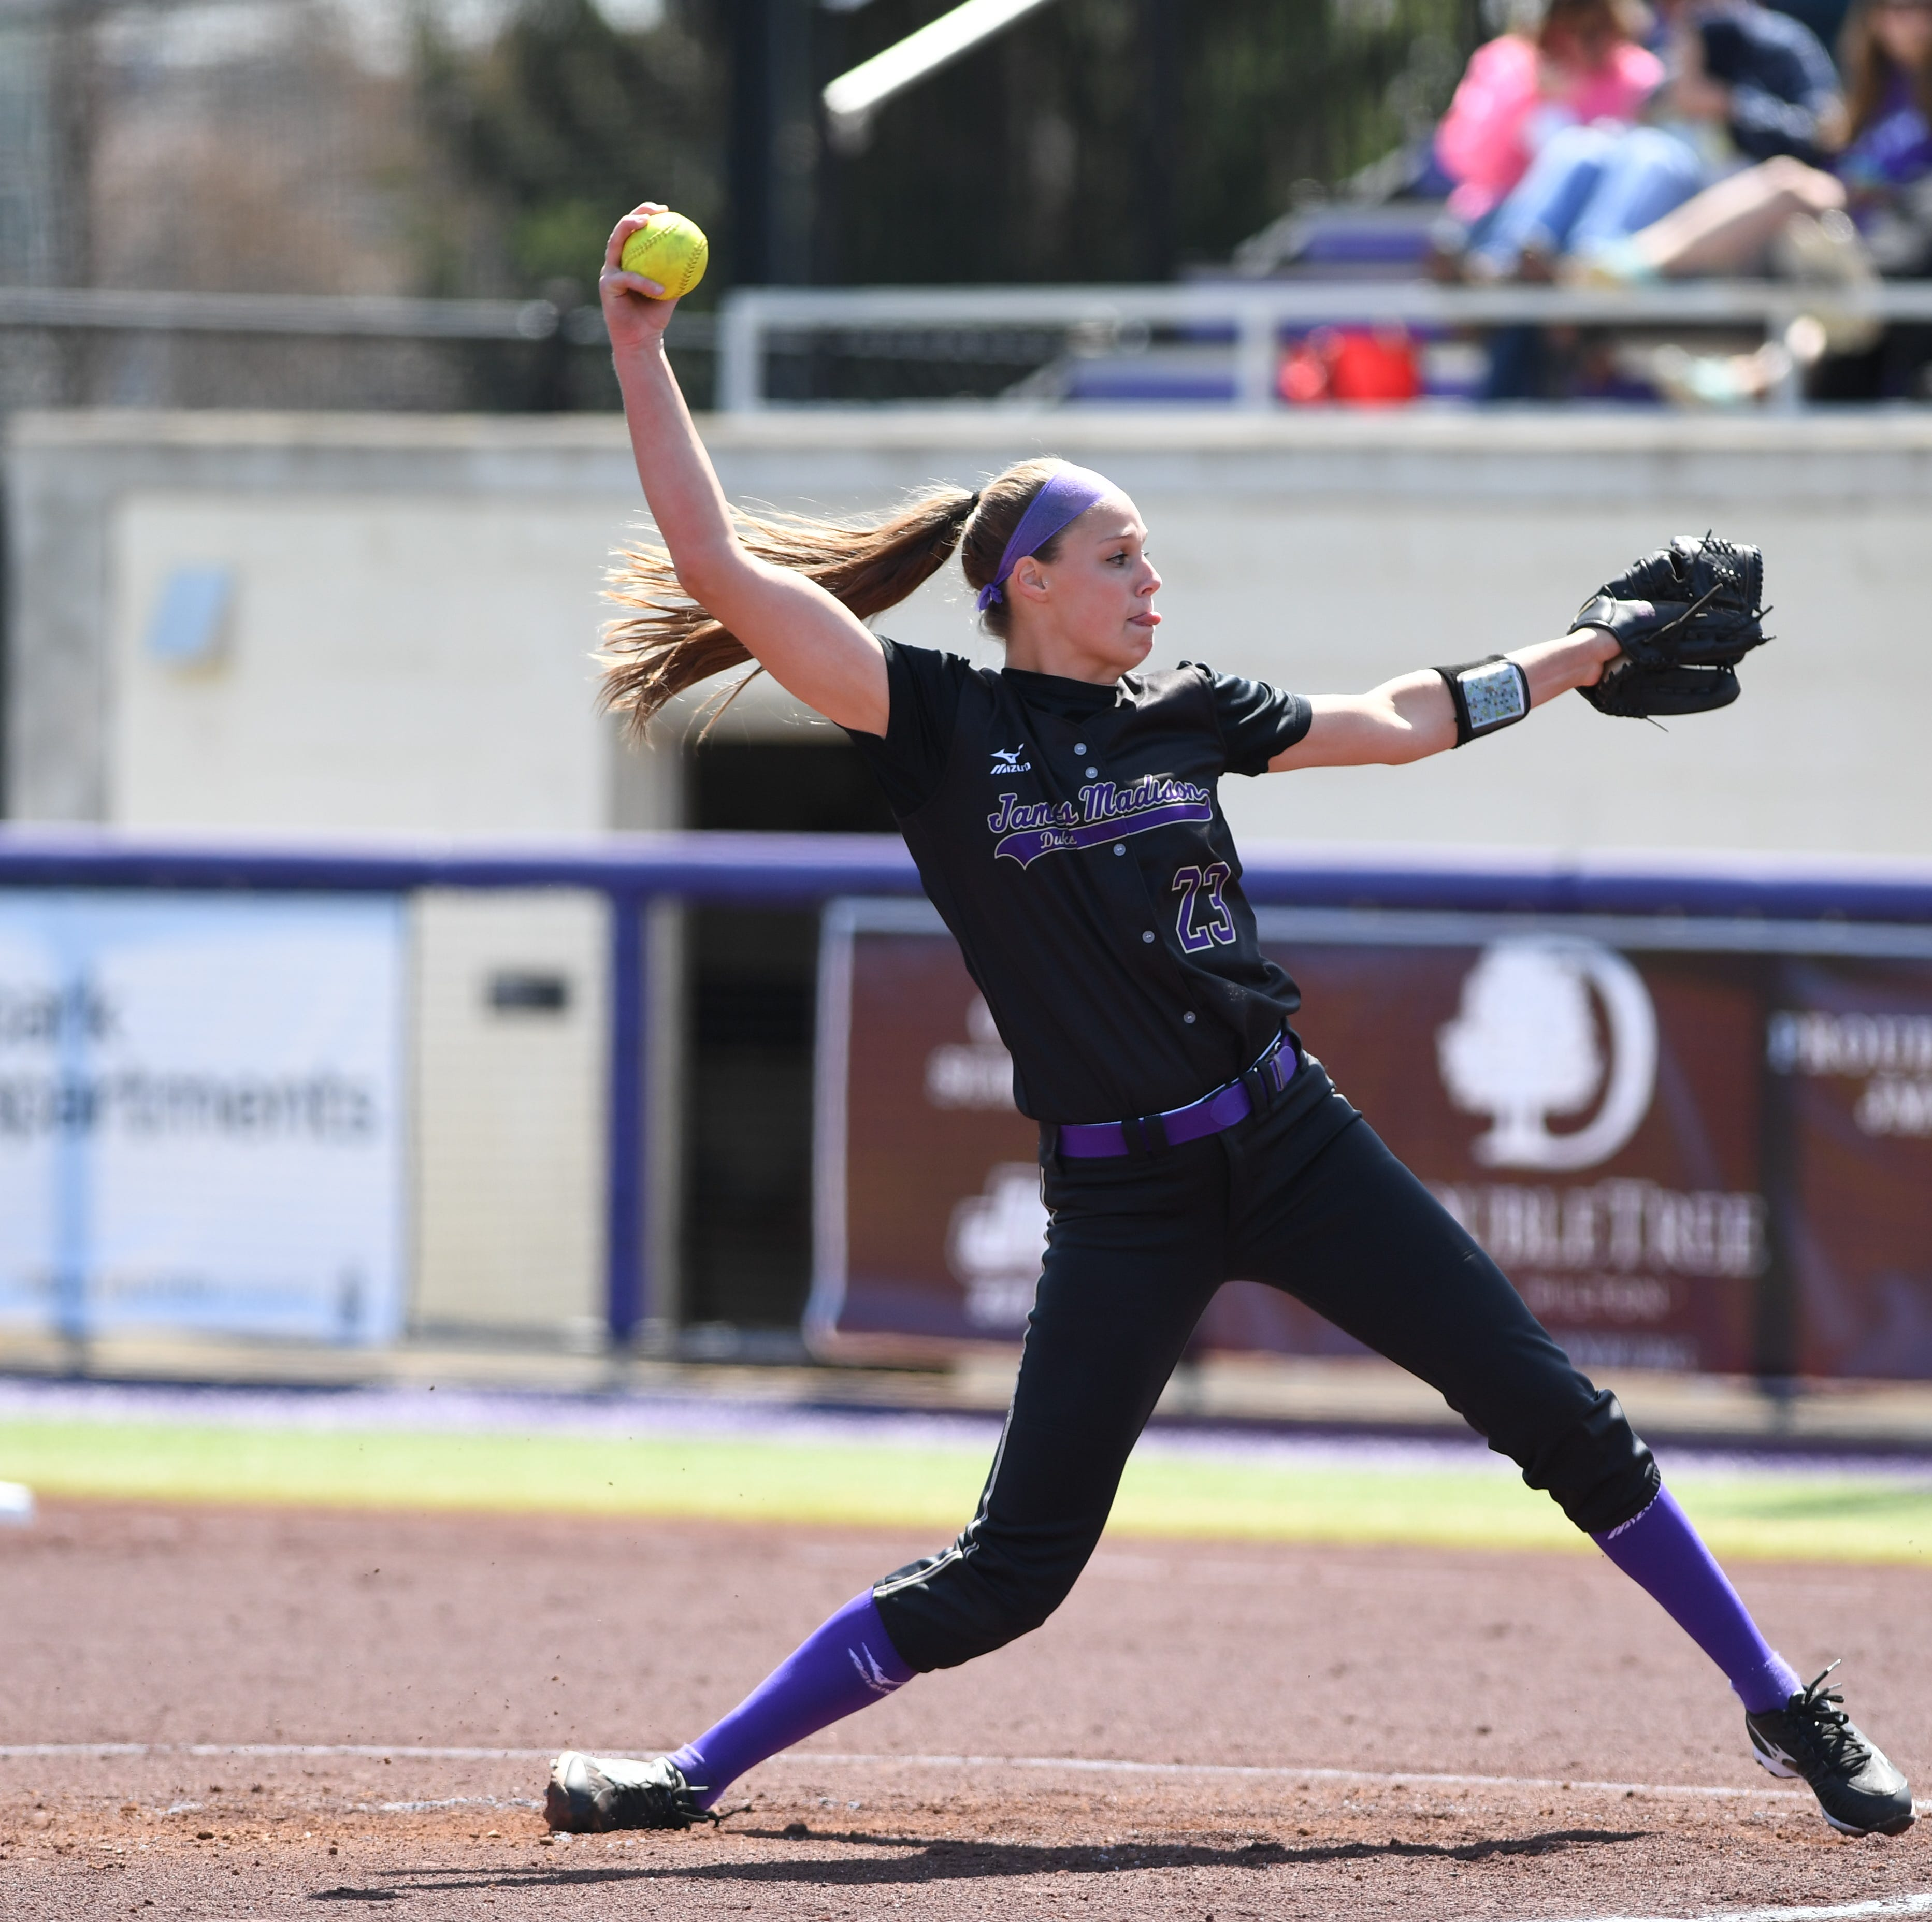 JMU's Megan Good selected in NPF draft